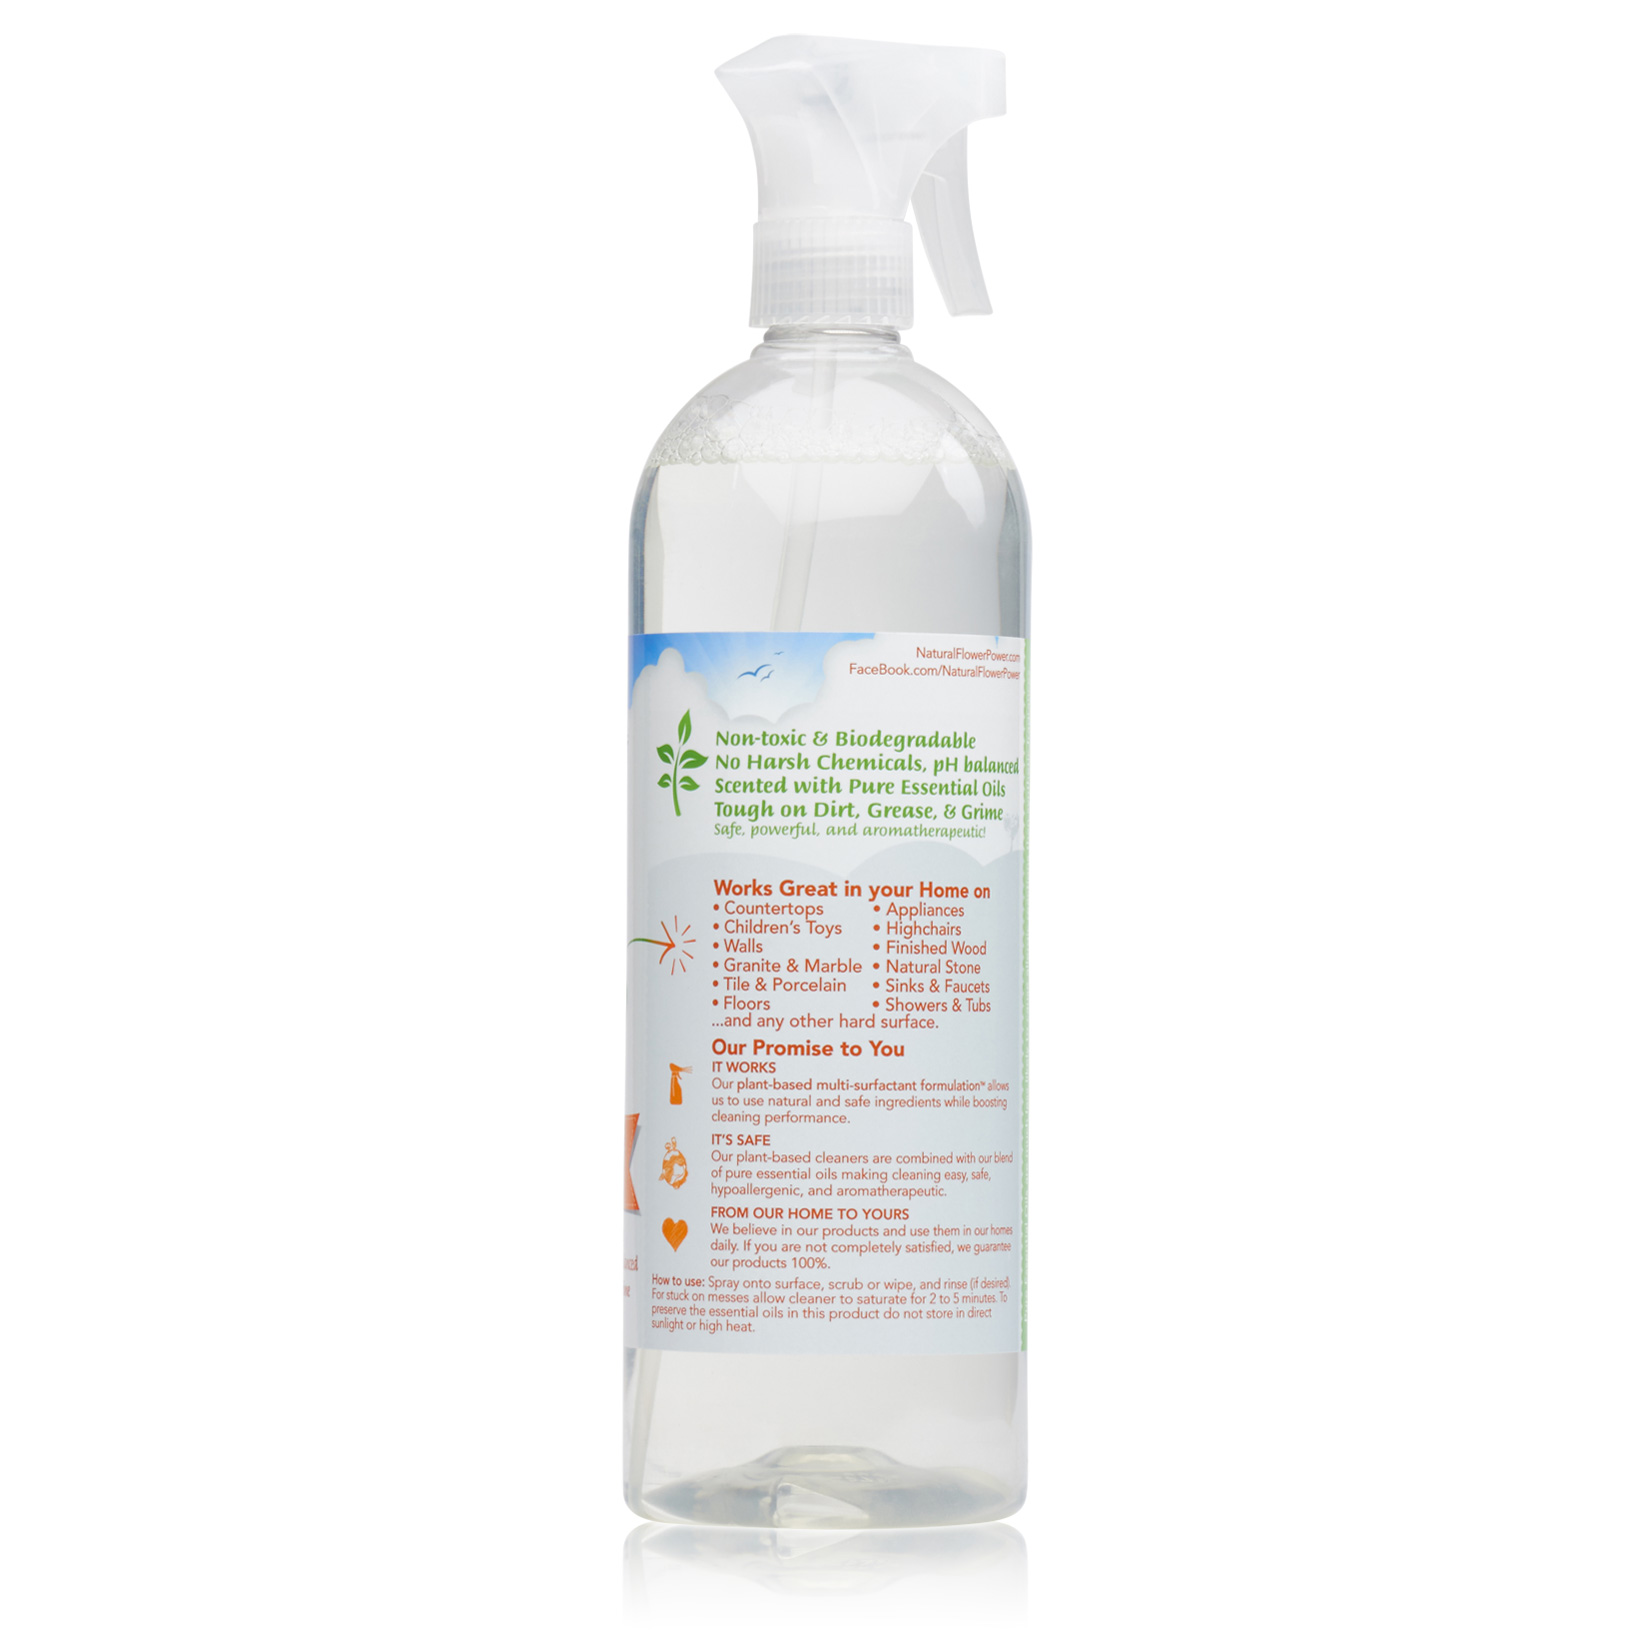 All-Purpose Cleaner Citrus & Spice – Back